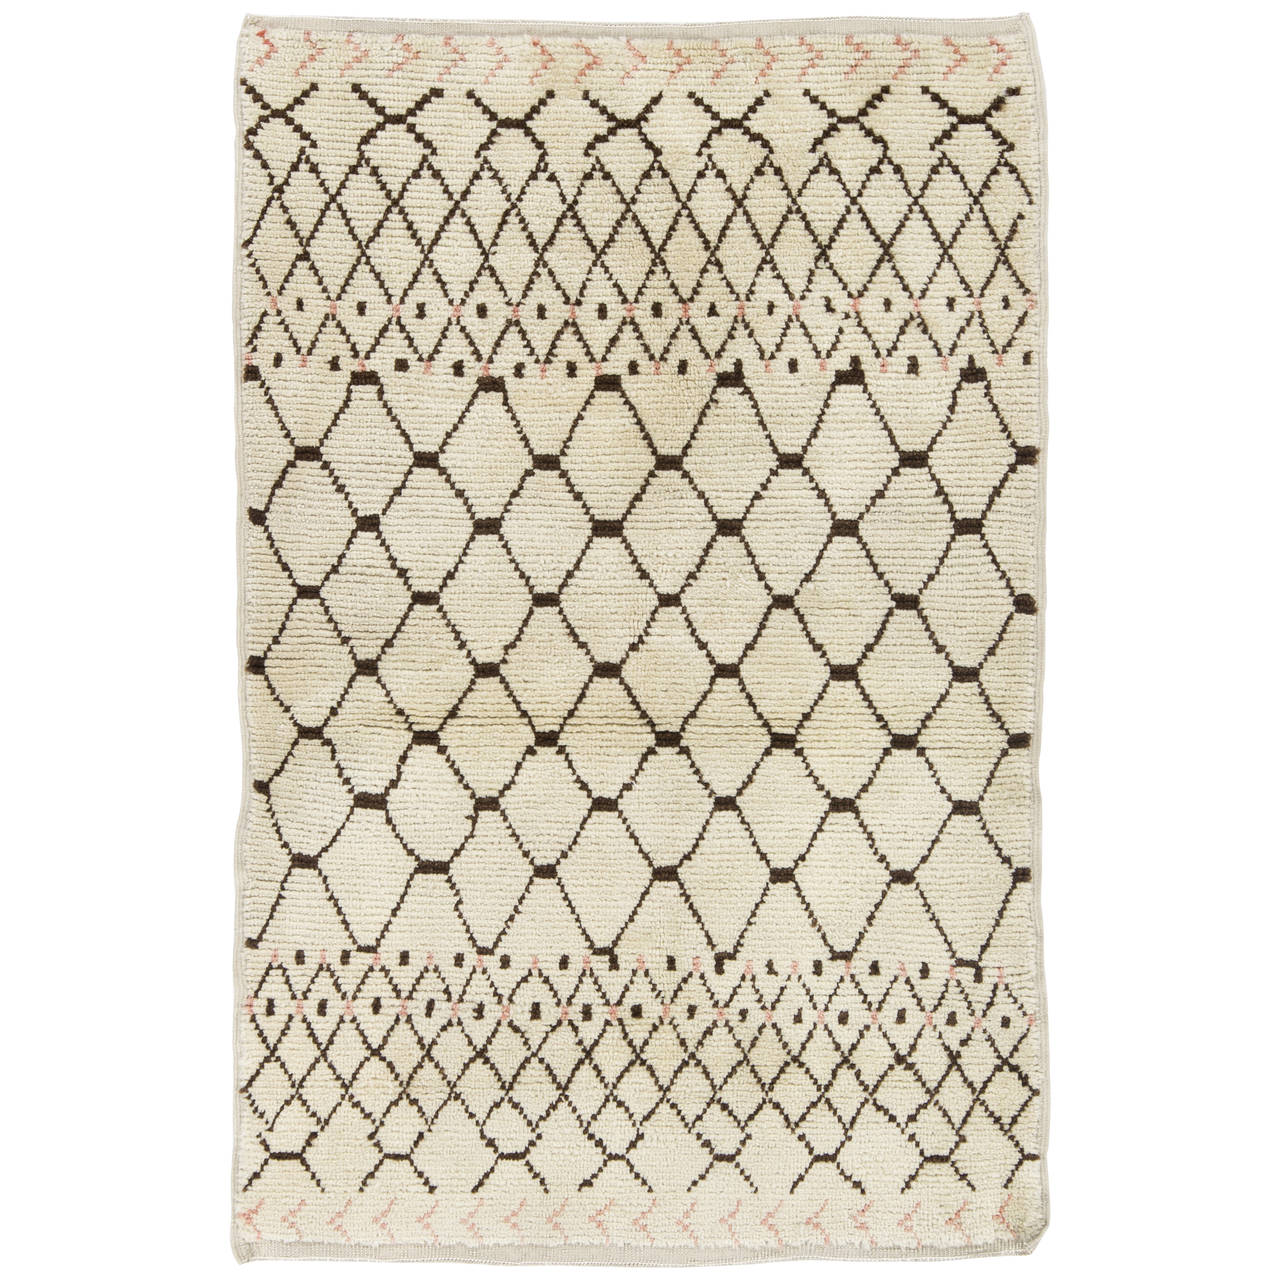 rug citnb the black new moroccan kechmara buy sacramento to cheetah best is where rugs